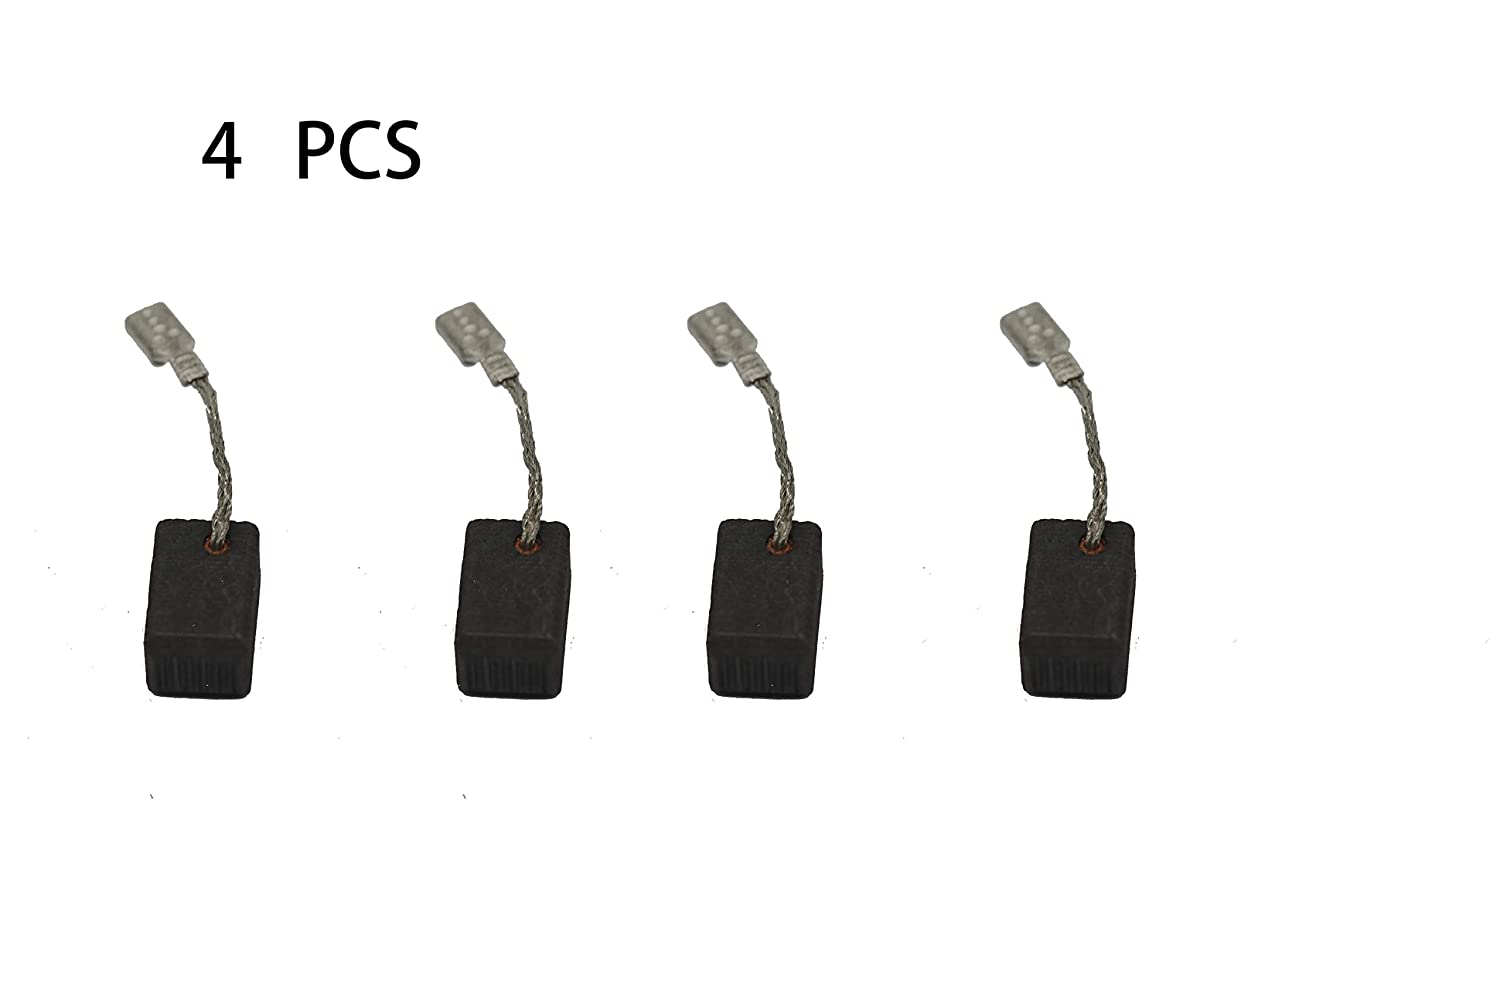 4 PCS Carbon Brushes Compatible Bosch 1380 Angle Grinder, Brush Replacement Part for Power Tools